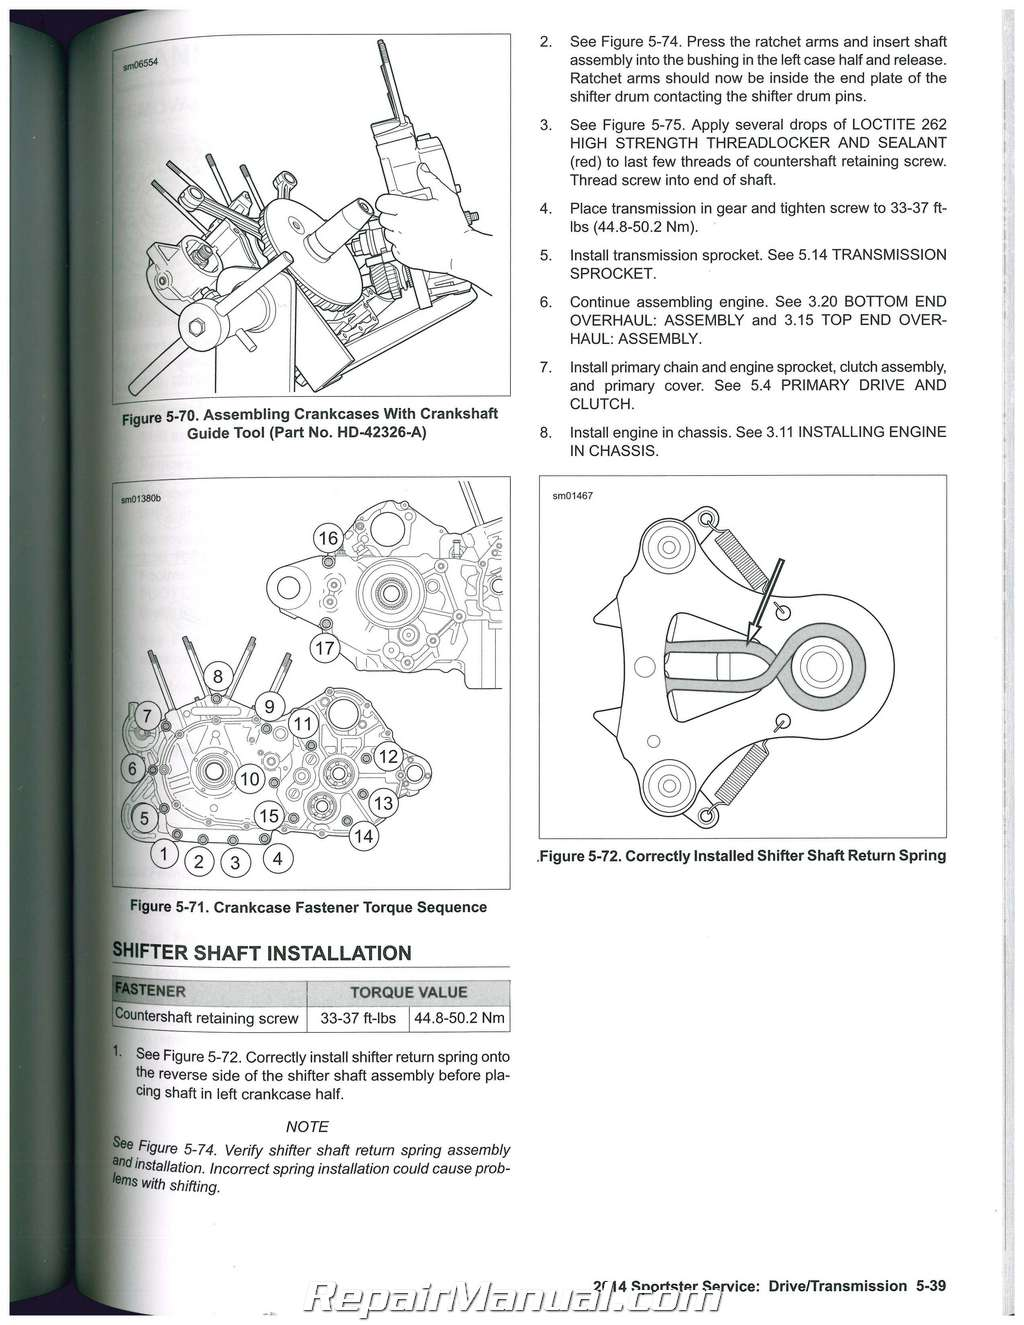 2014 Harley Davidson Sportster Motorcycle Service Manual